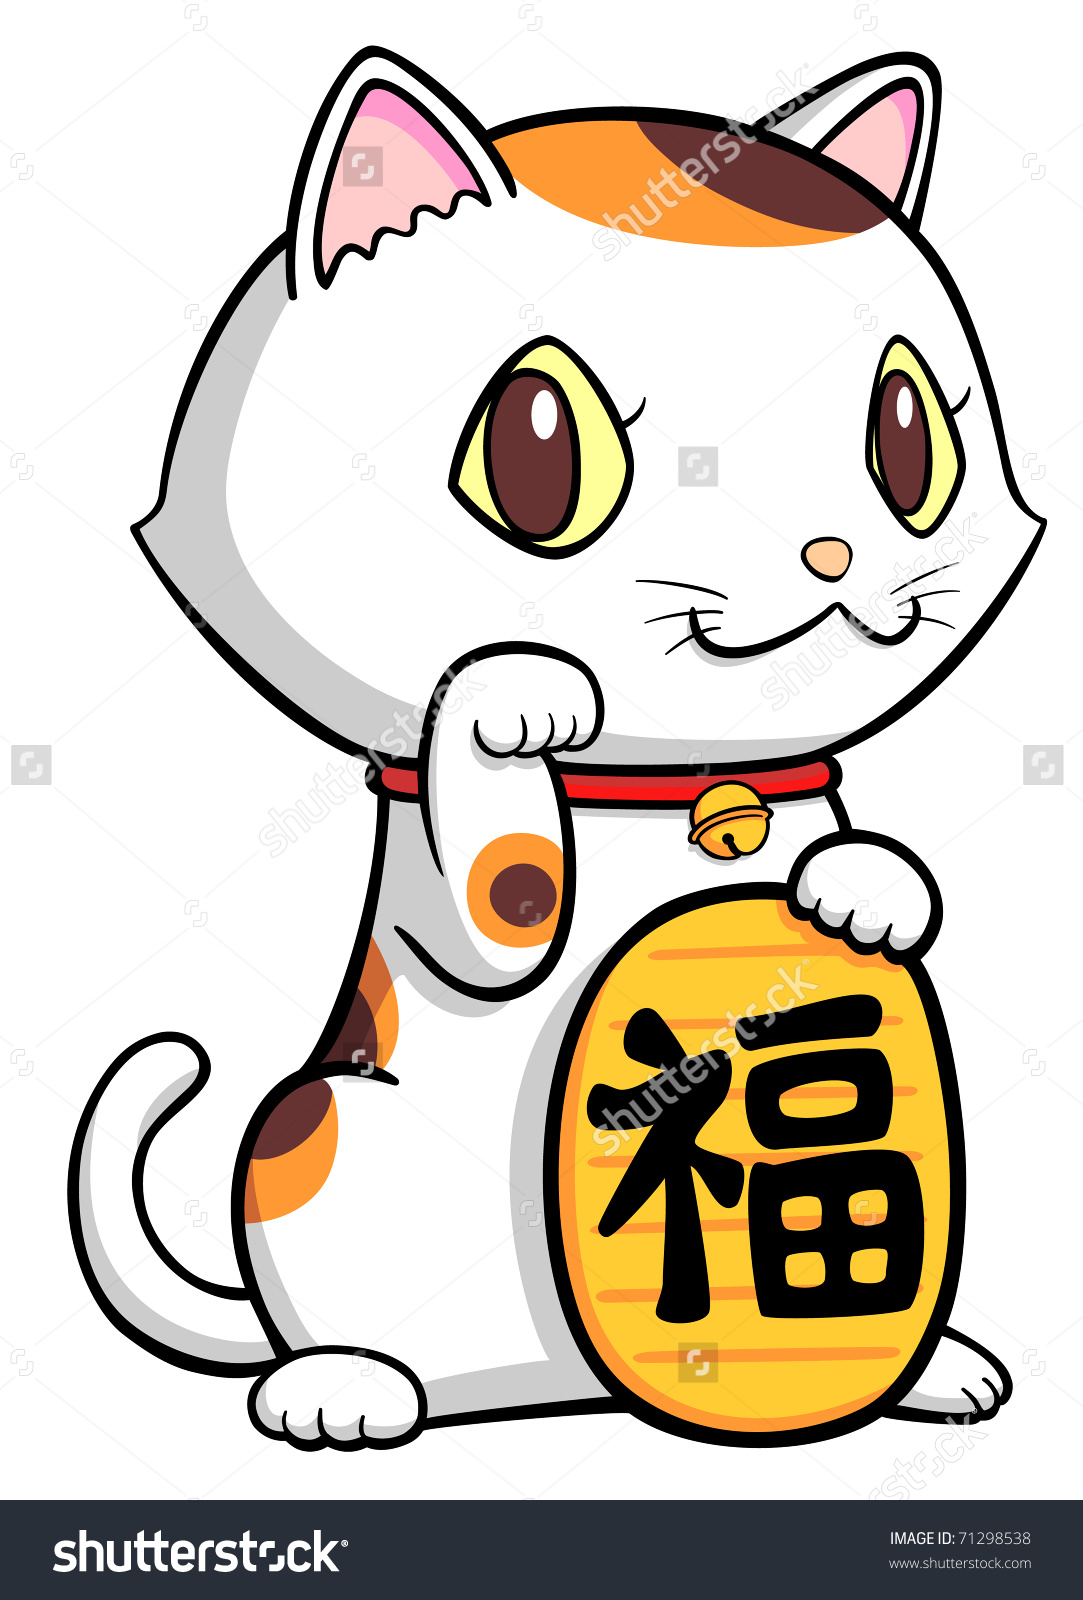 Lucky cat clipart svg download Lucky cat clipart - ClipartFox svg download